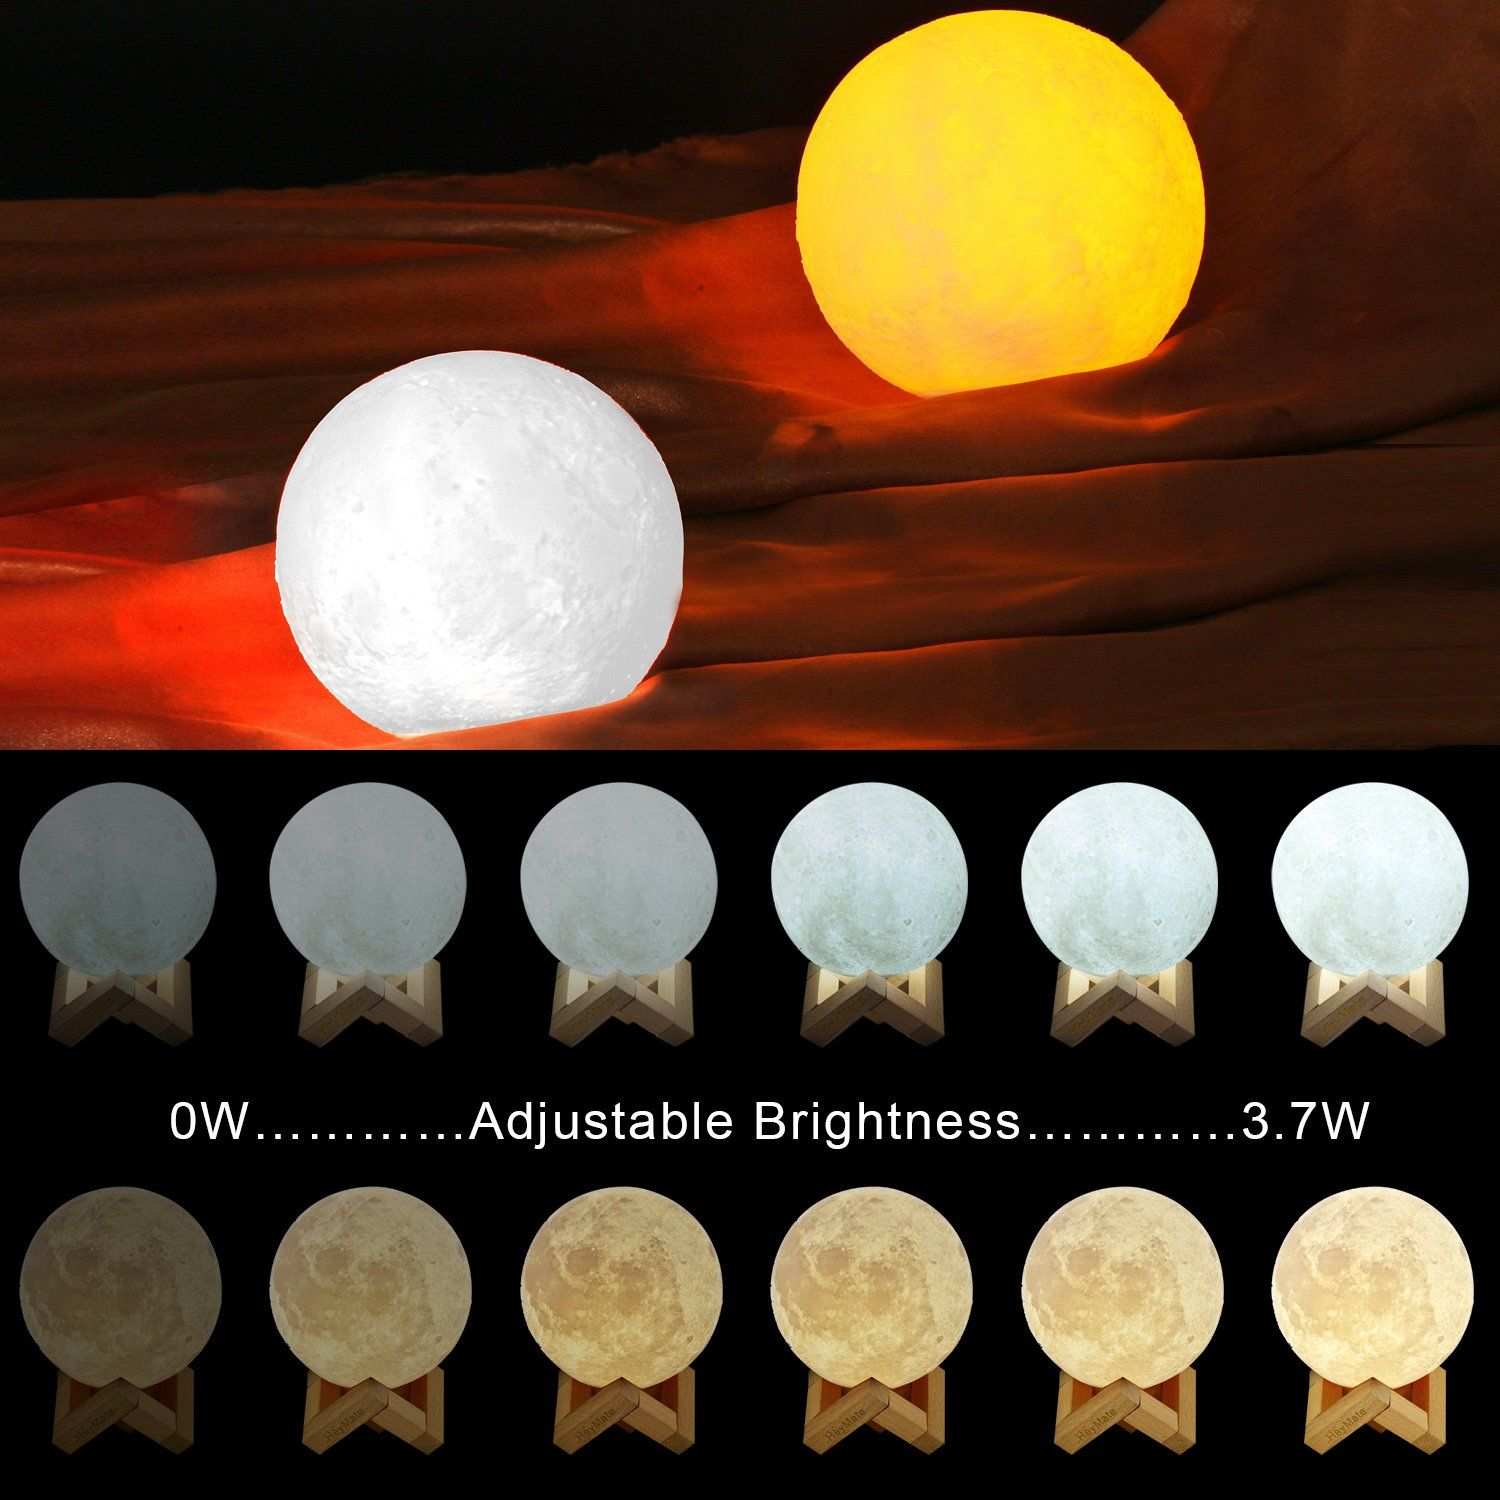 Heymate Moon Light 3d Printing Touch Sensor Dimmable 4 7 Moon Lamp With Wooden Stand Rechargeable Night Light For Desk Bedr Night Light Nursery Lamp Girl Gifts